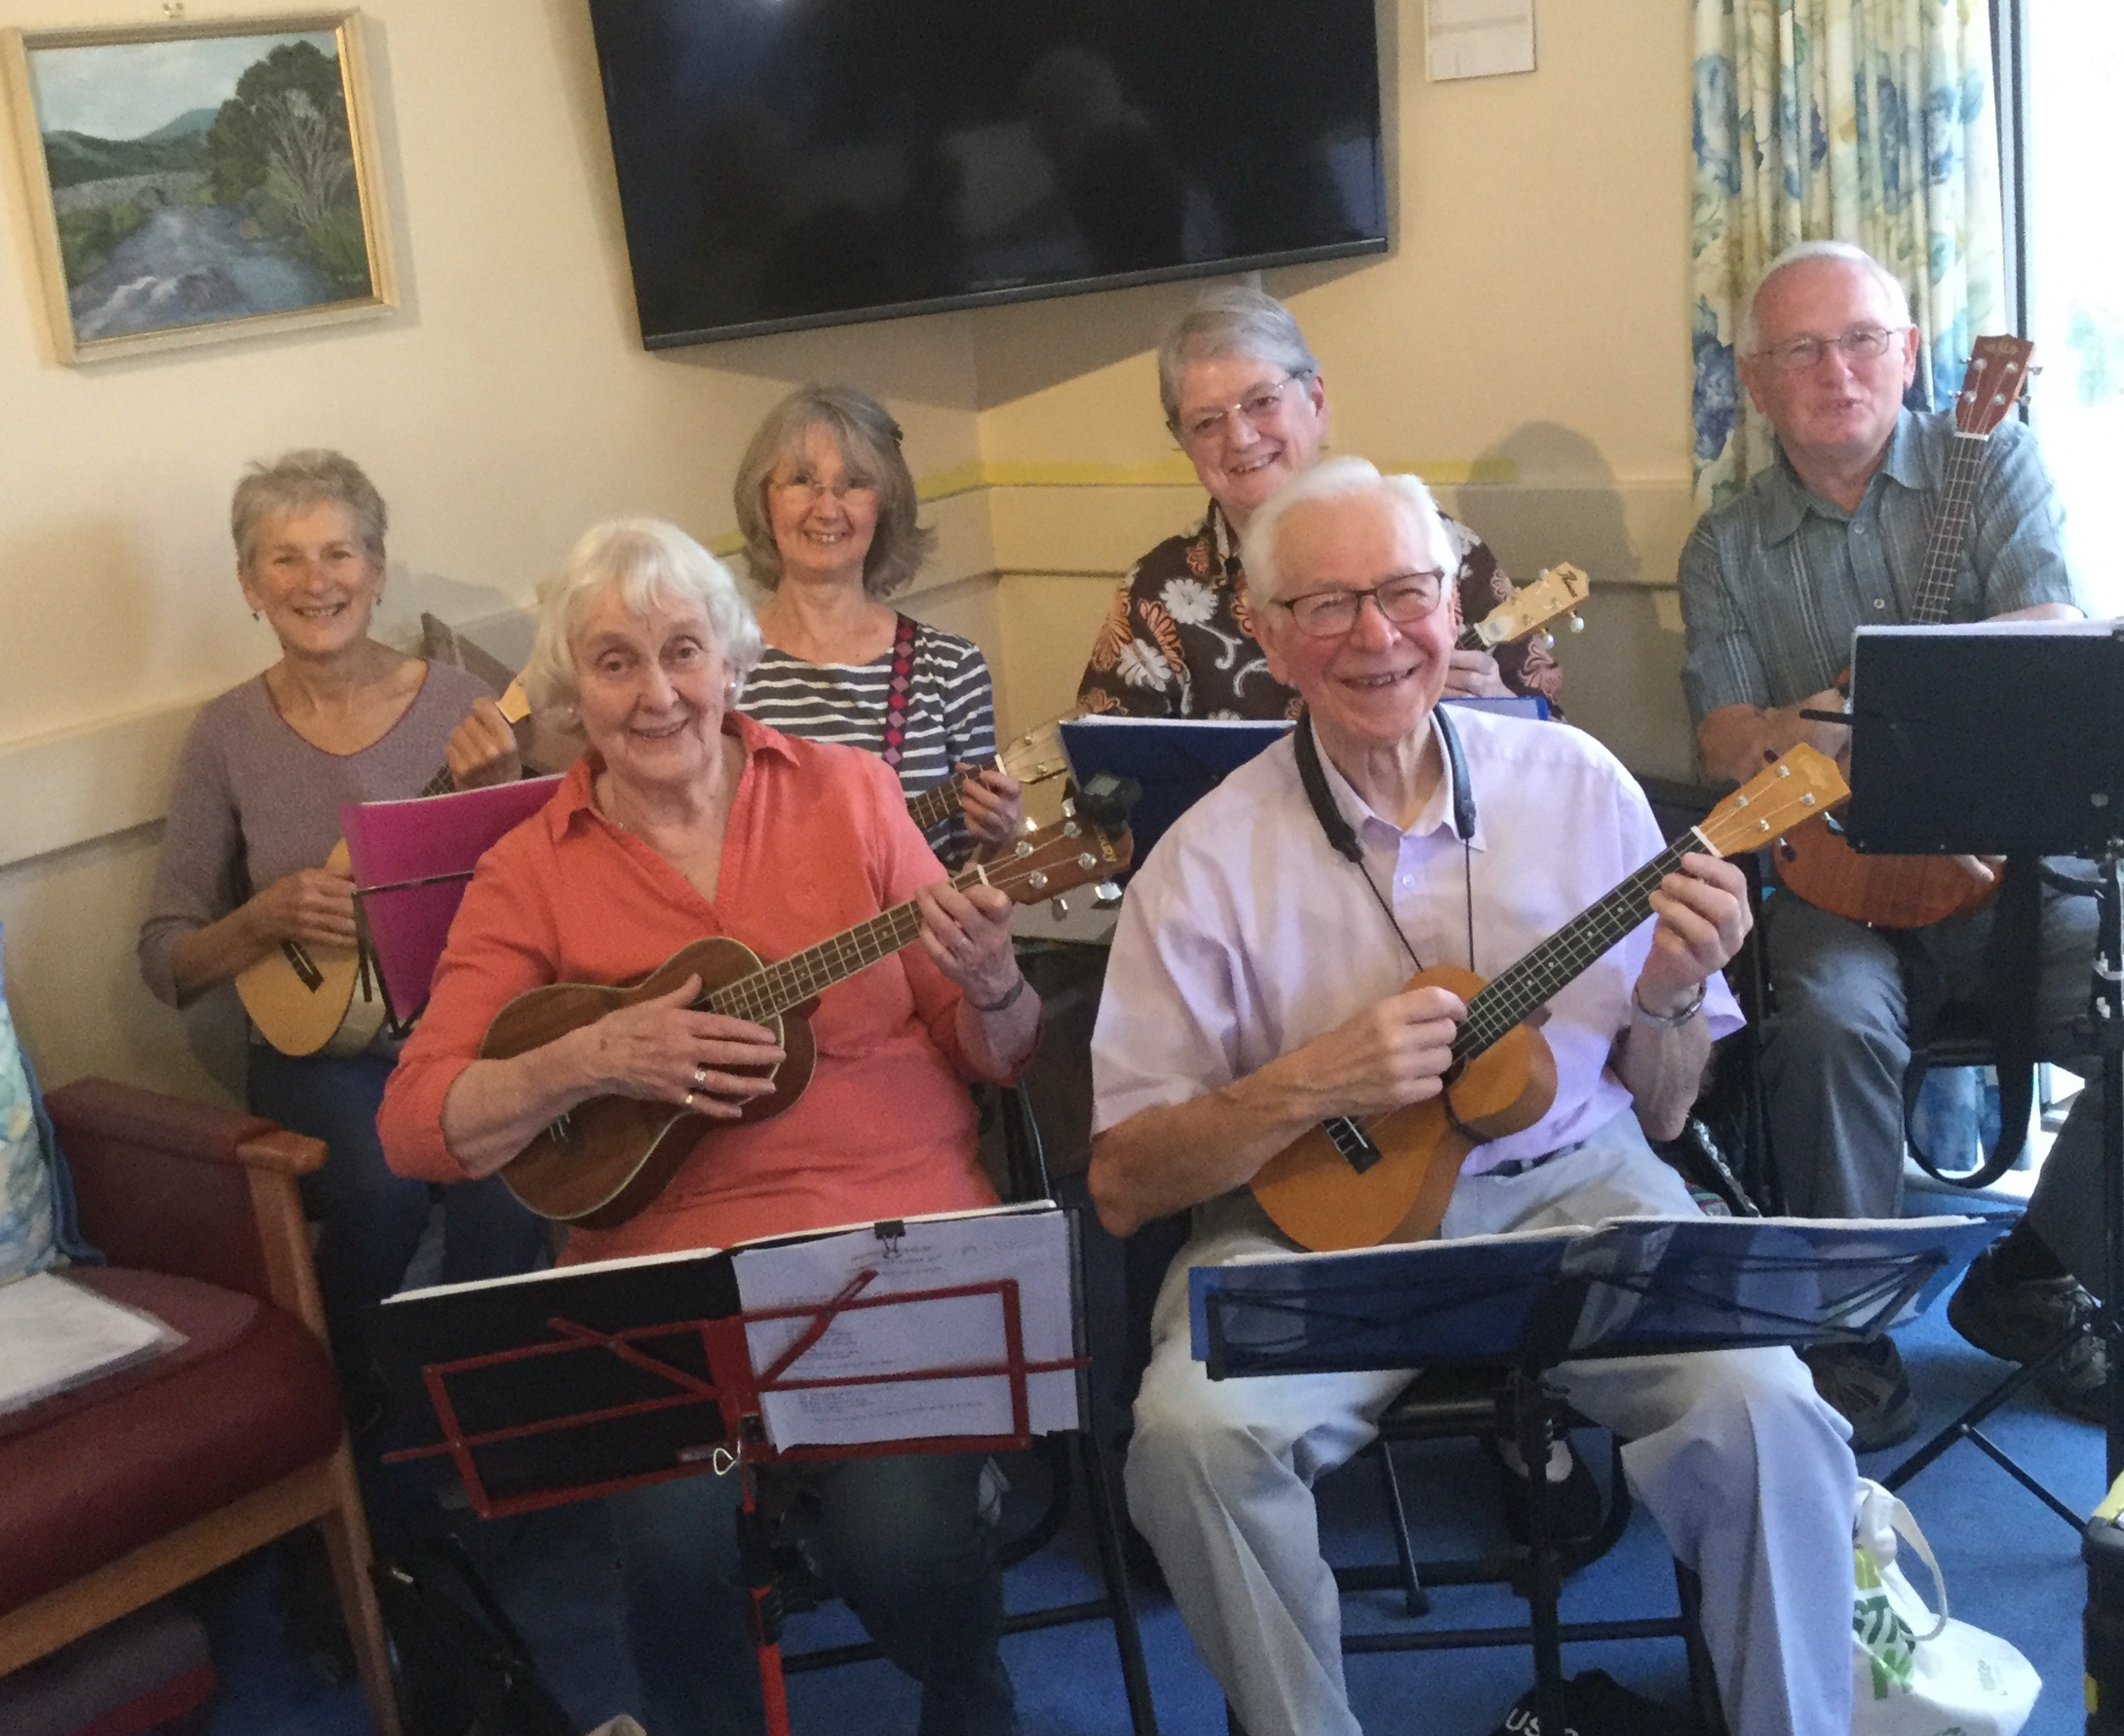 Some members of the Ukulele group